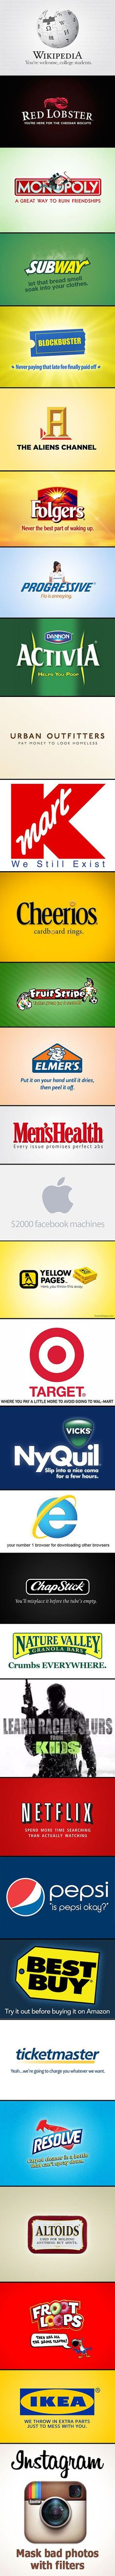 If company logos and slogans were honest...